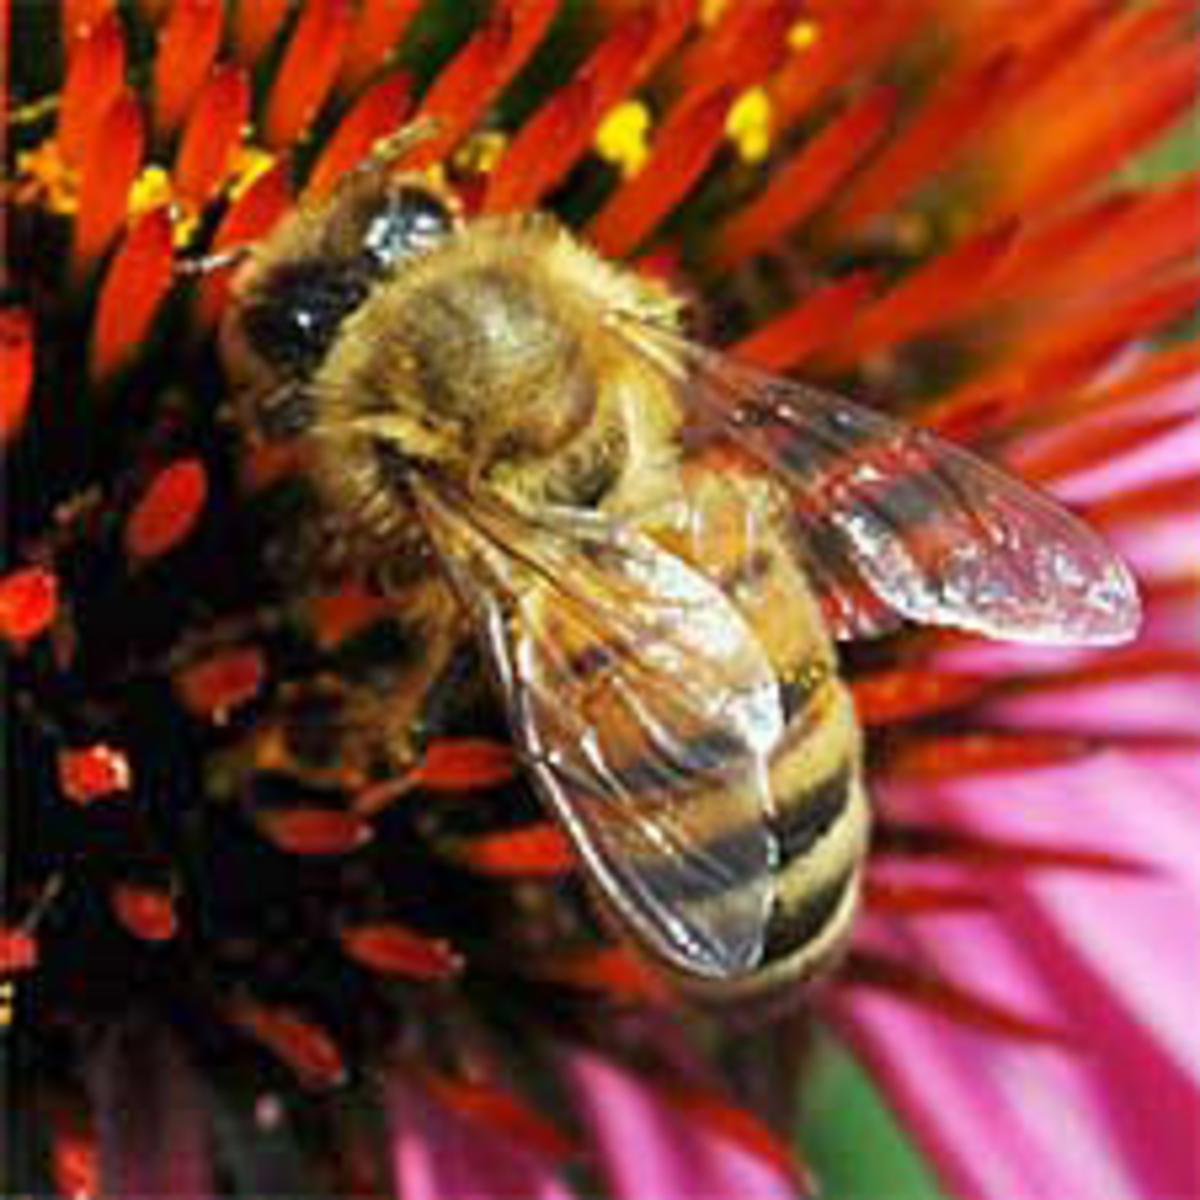 Bees Are Our Friend